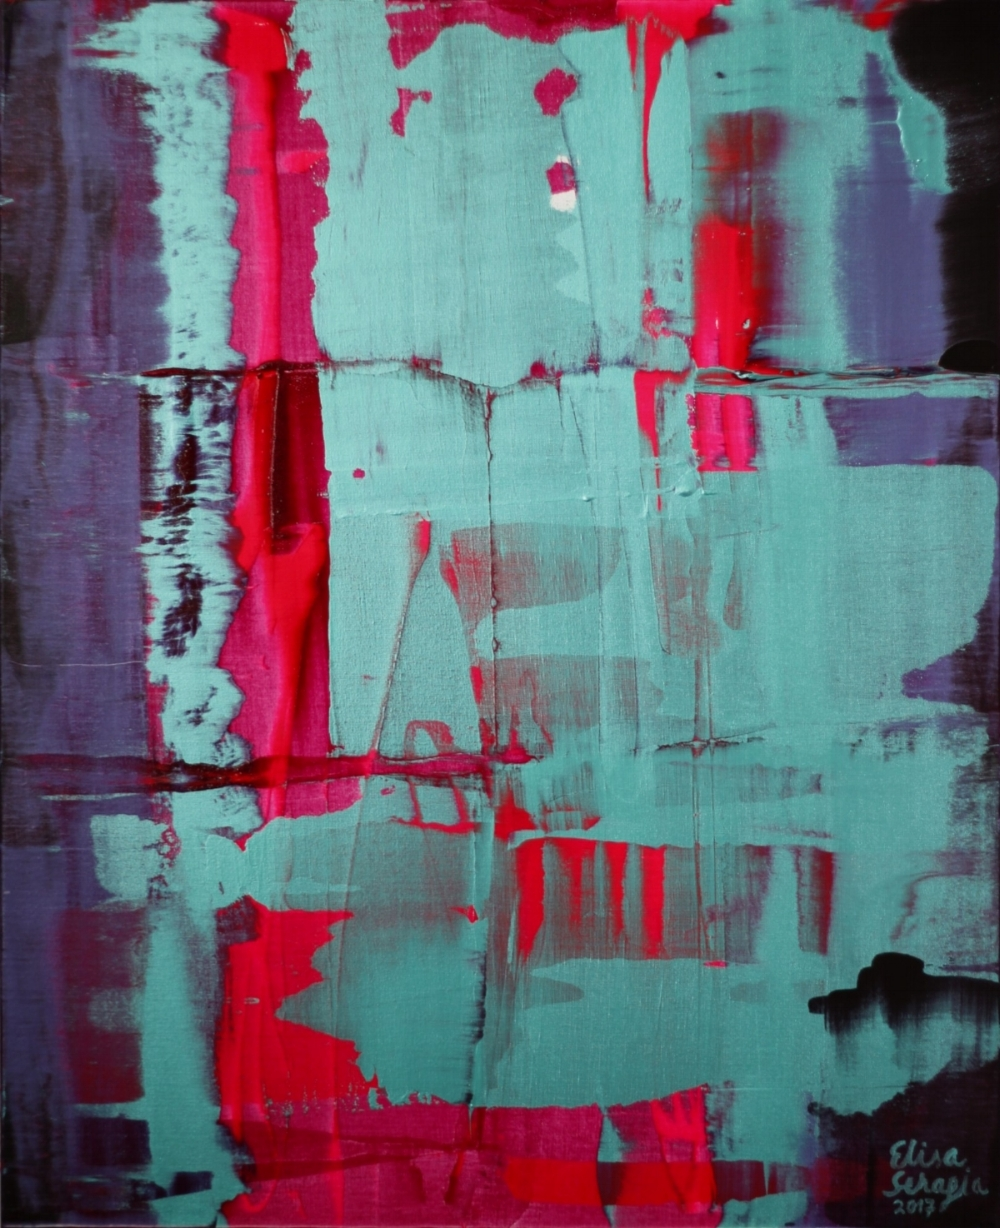 Magnitude, Akryyli kankaalle, 100 cm x 80 cm  Myyty / Sold